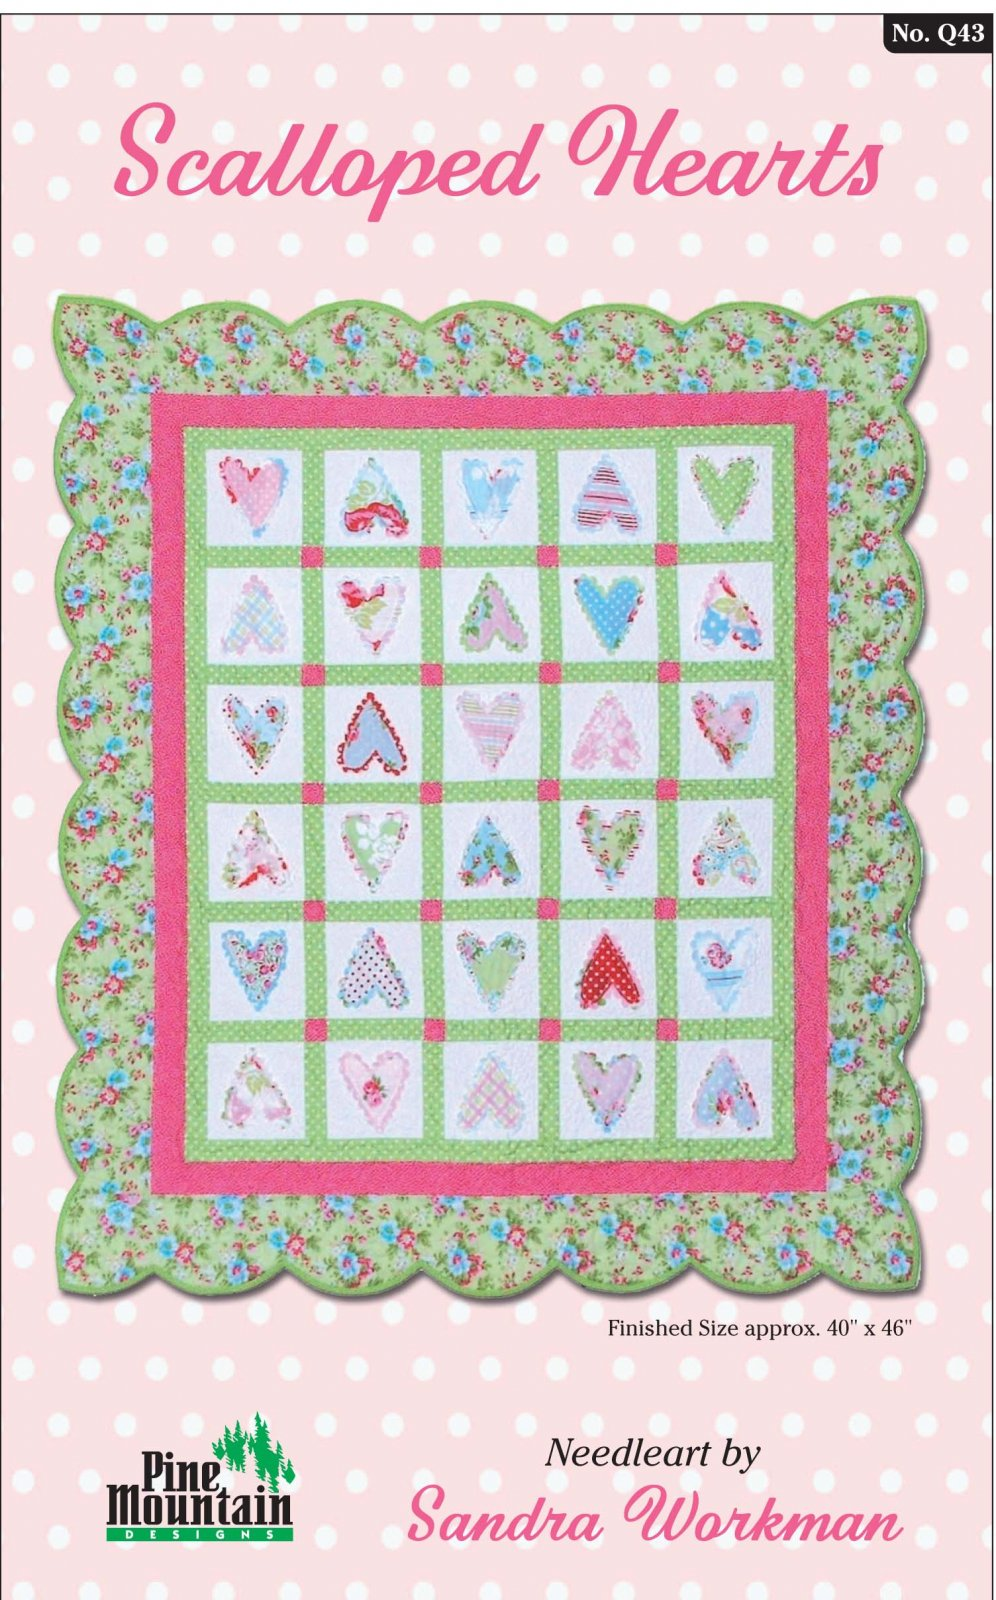 Q43 Scalloped Hearts quilt